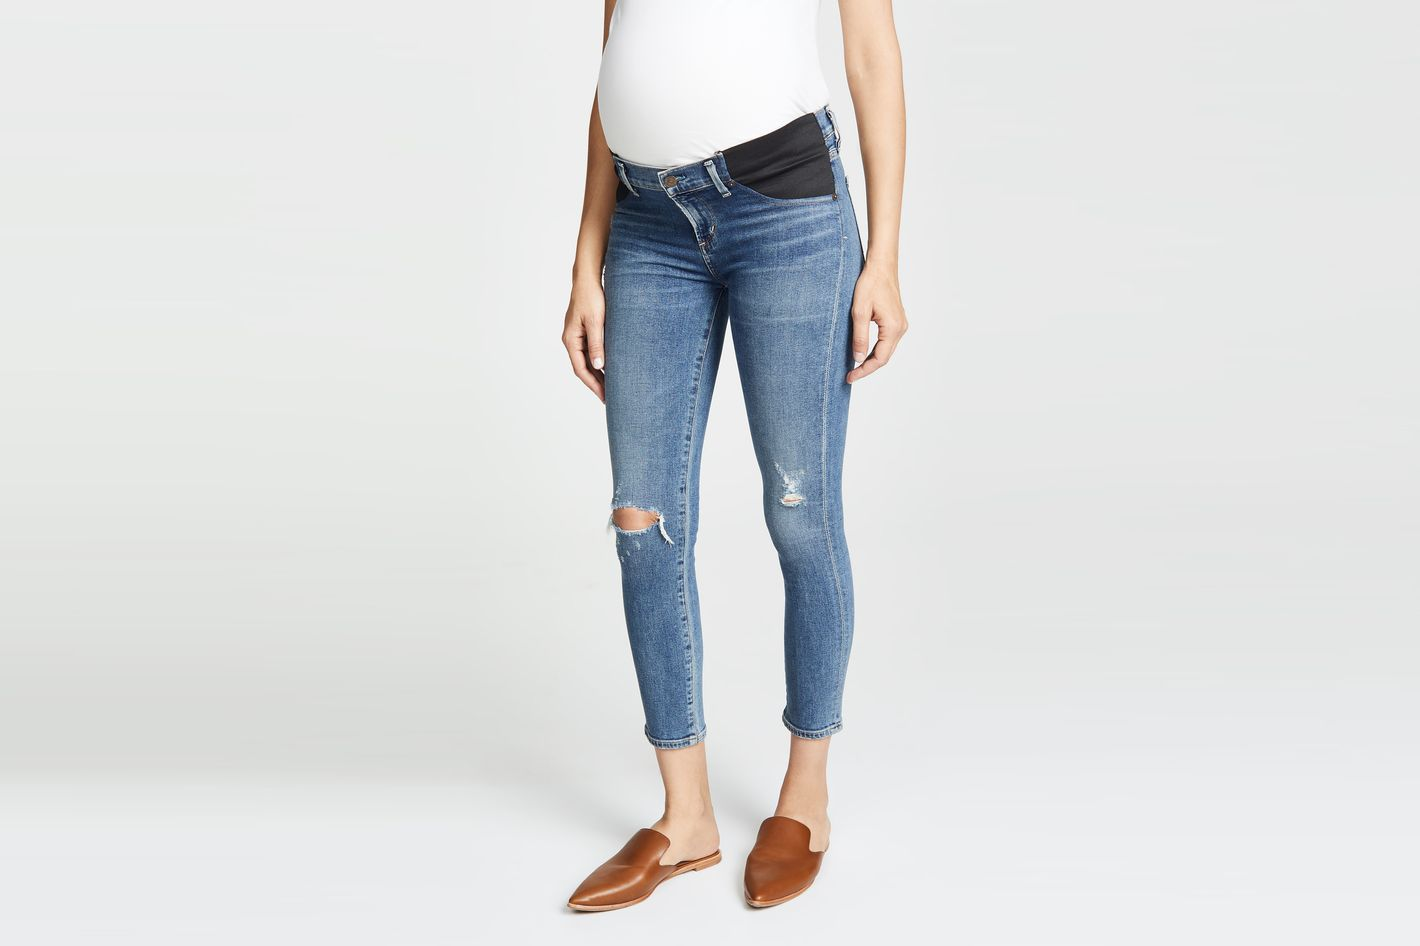 1a58607a2575d 63 of the Best Maternity Clothes: Jeans, Shirts & More 2018